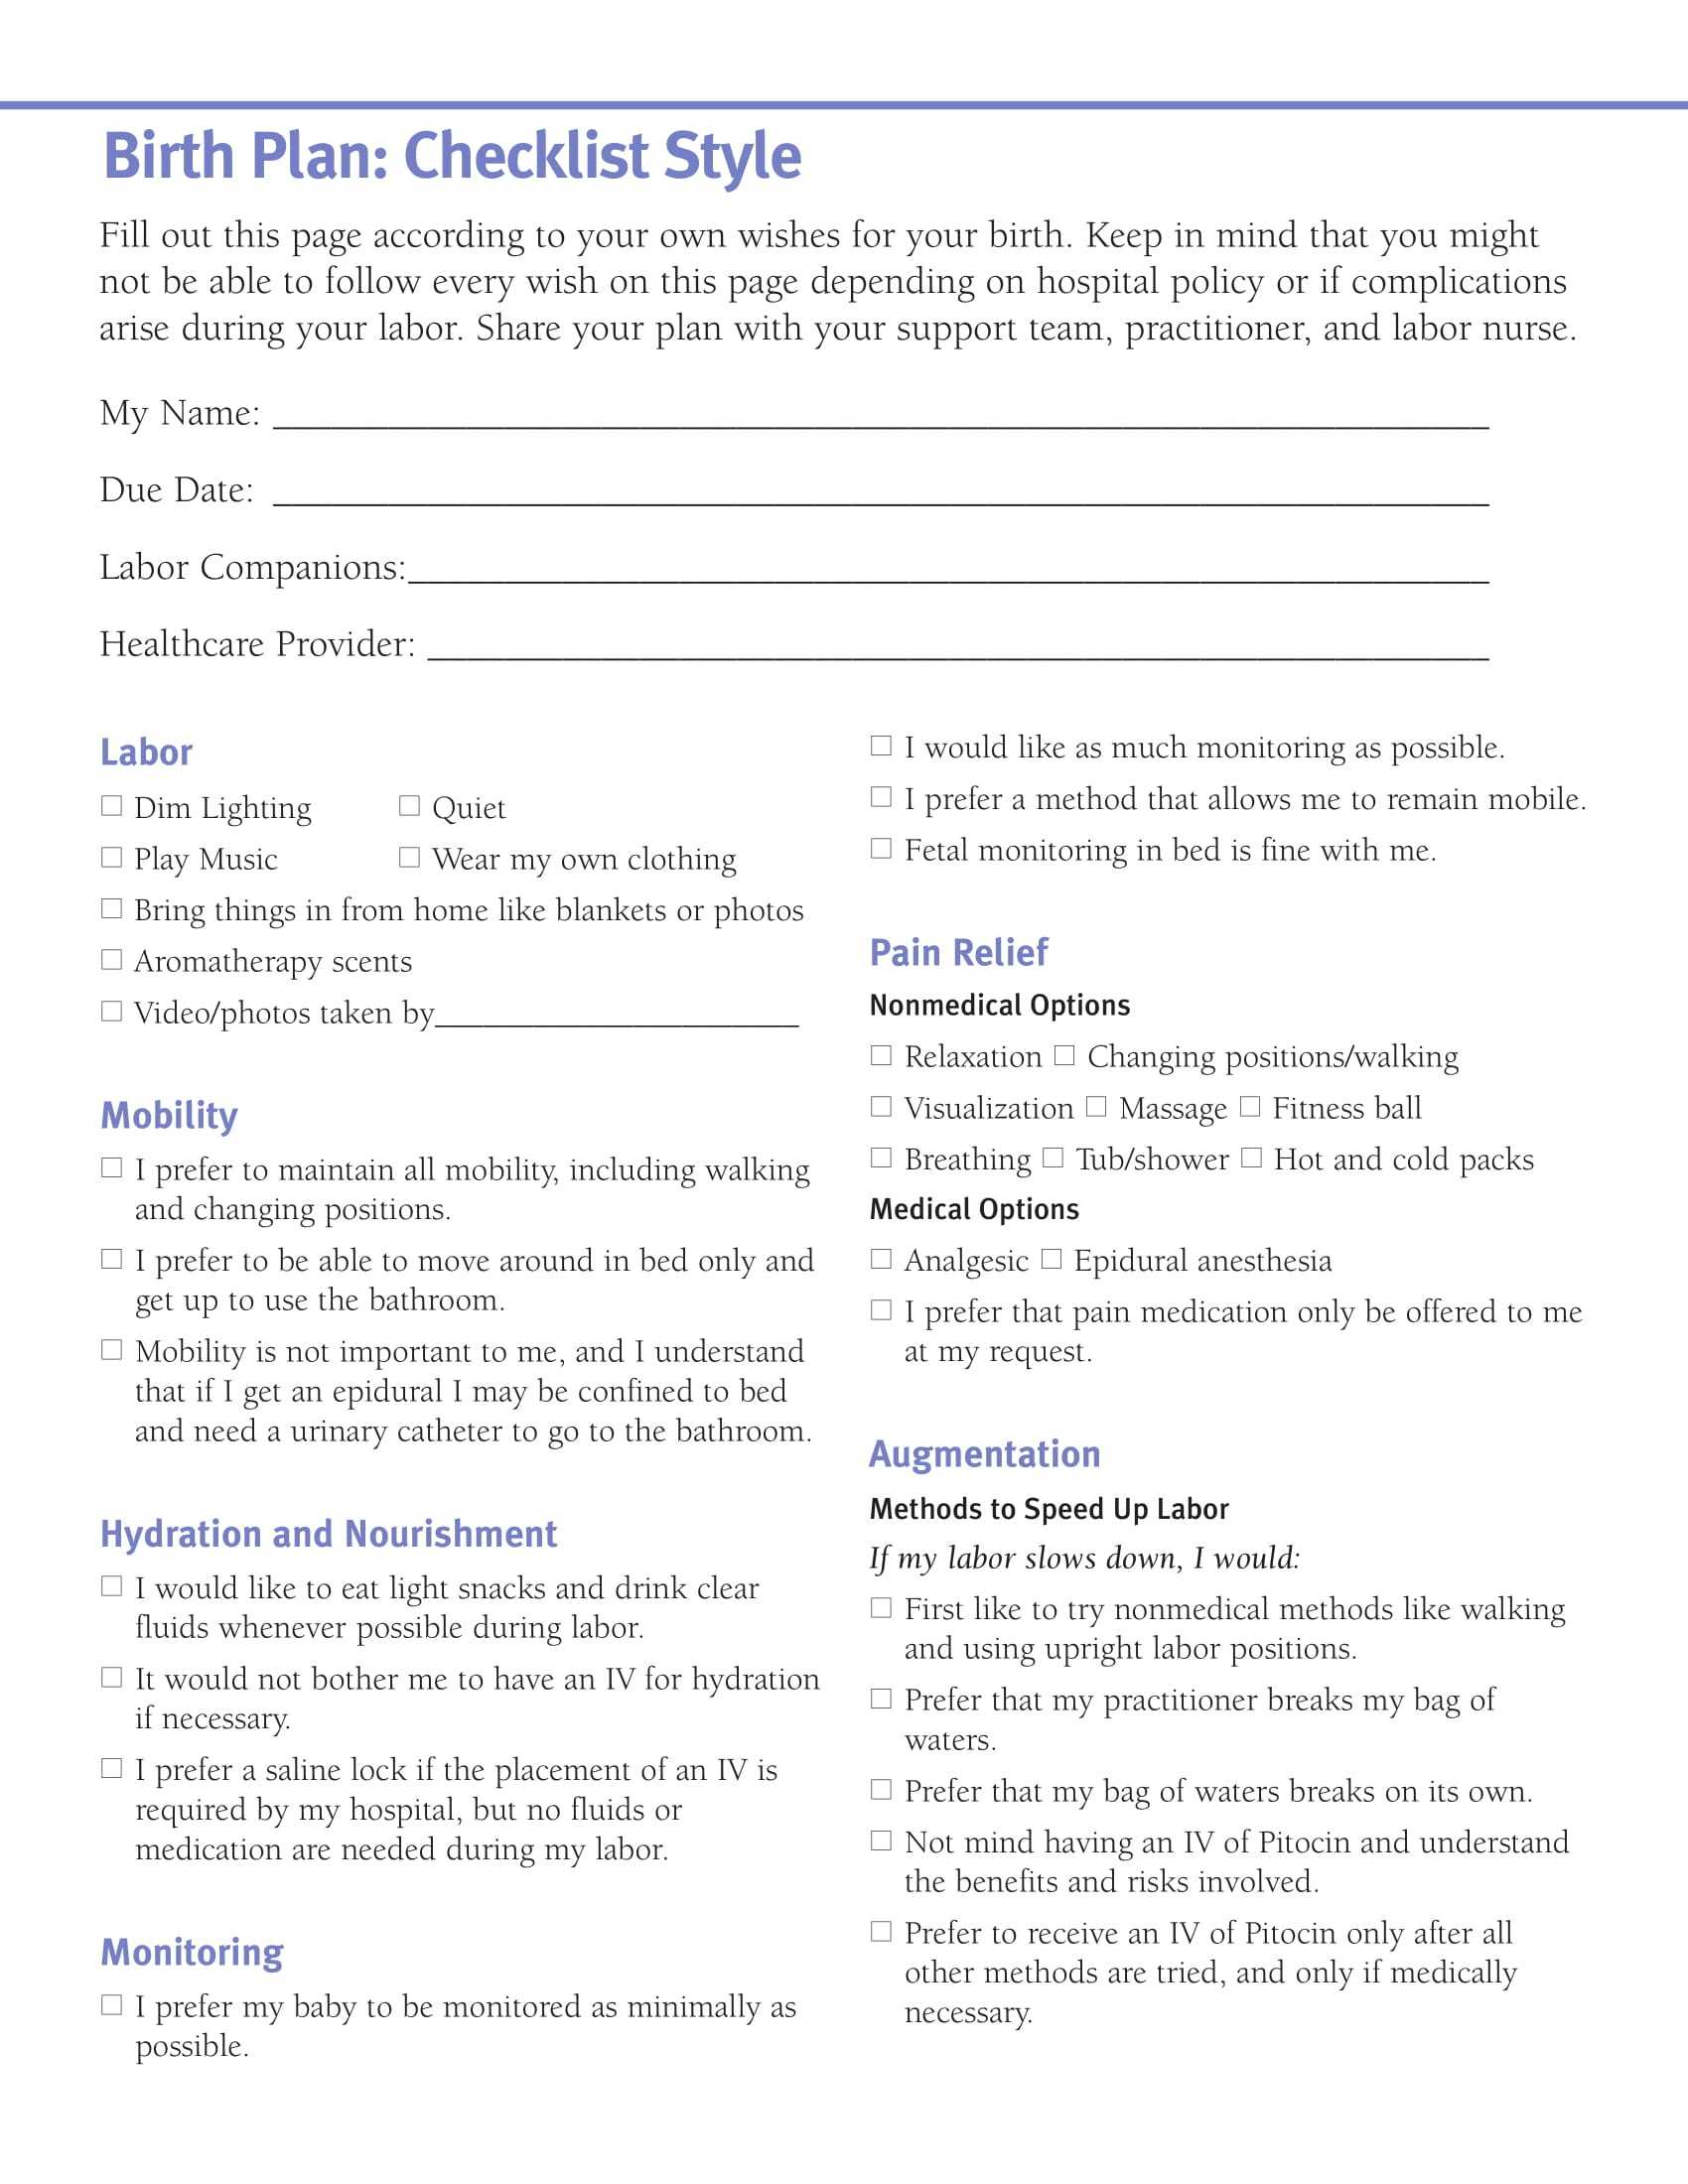 How To Write A Free Birth Plan Template